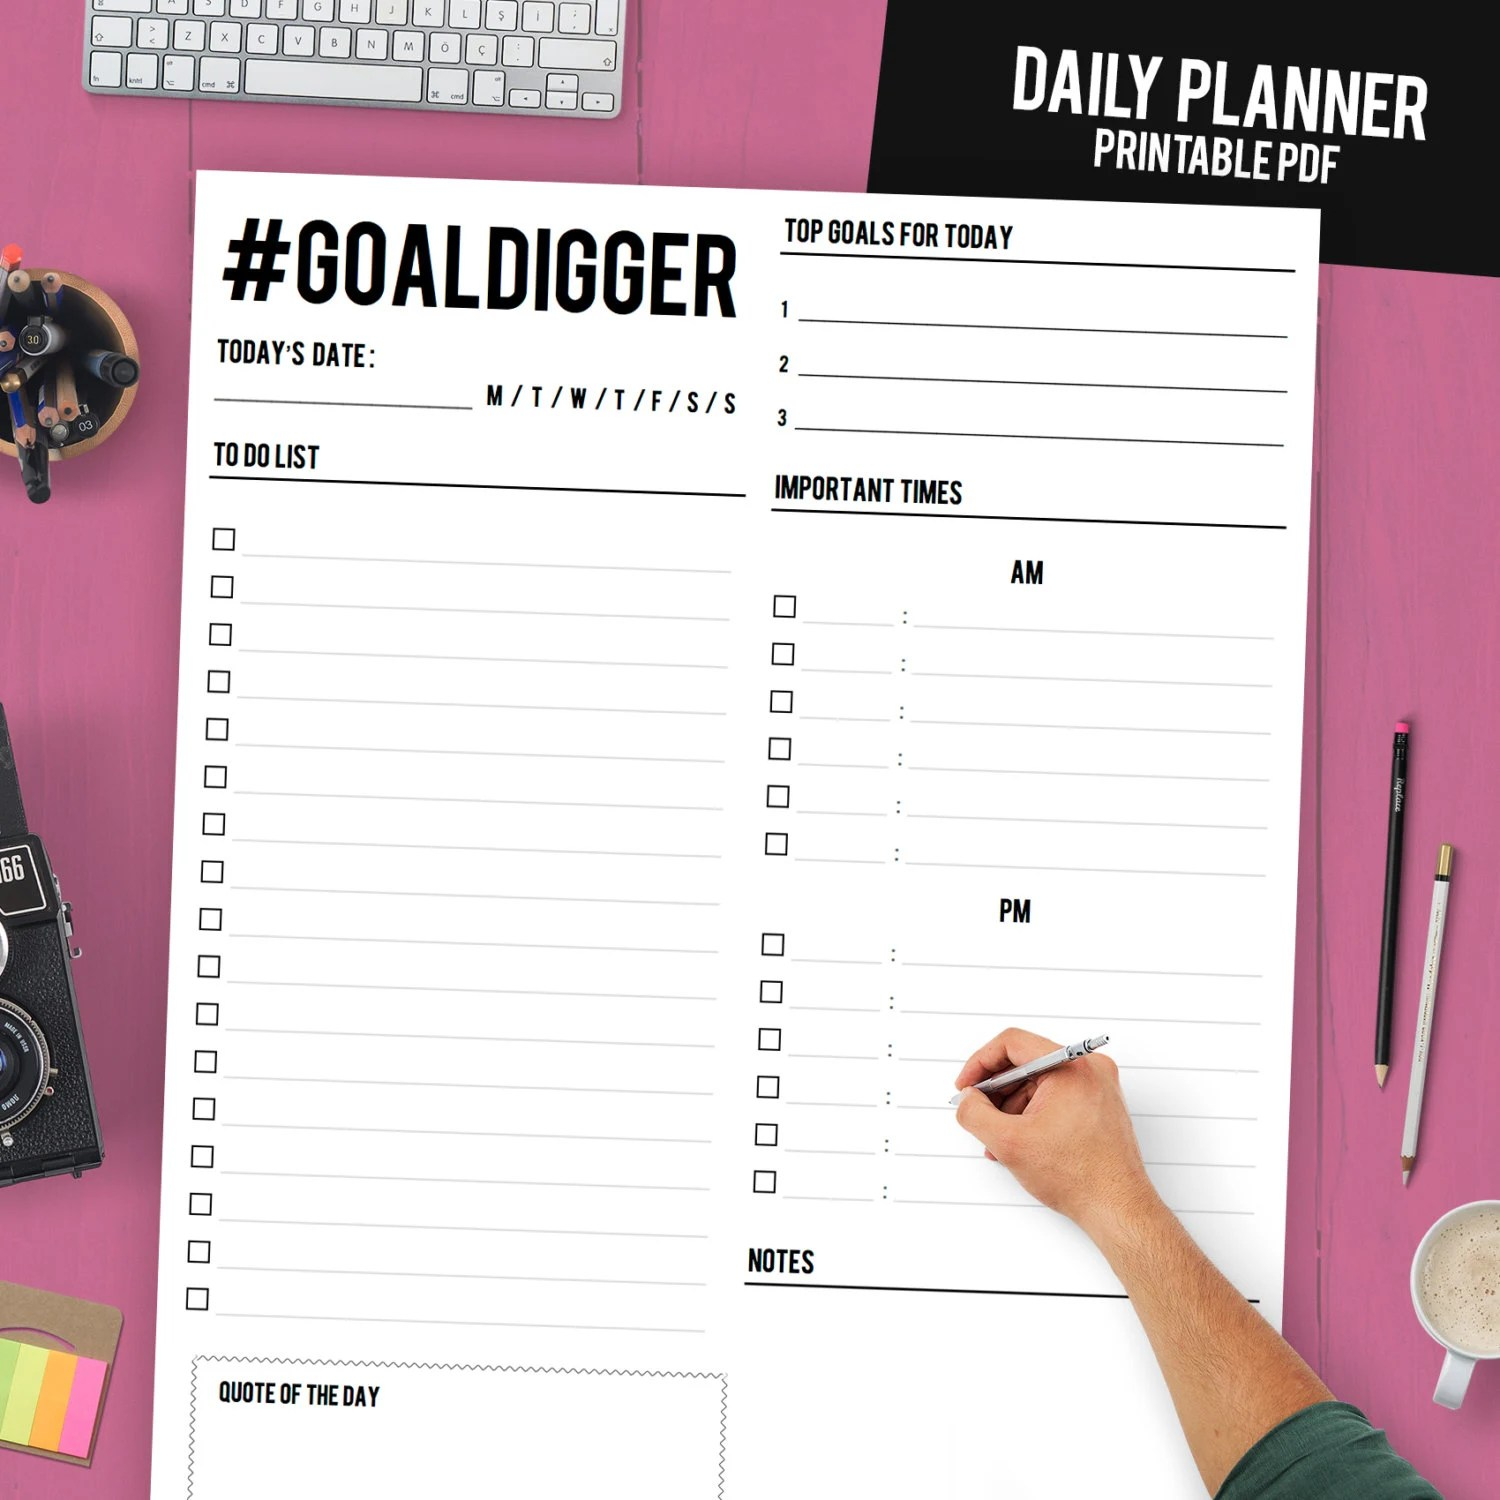 Daily Planner Printable Daily Planner Binder Daily